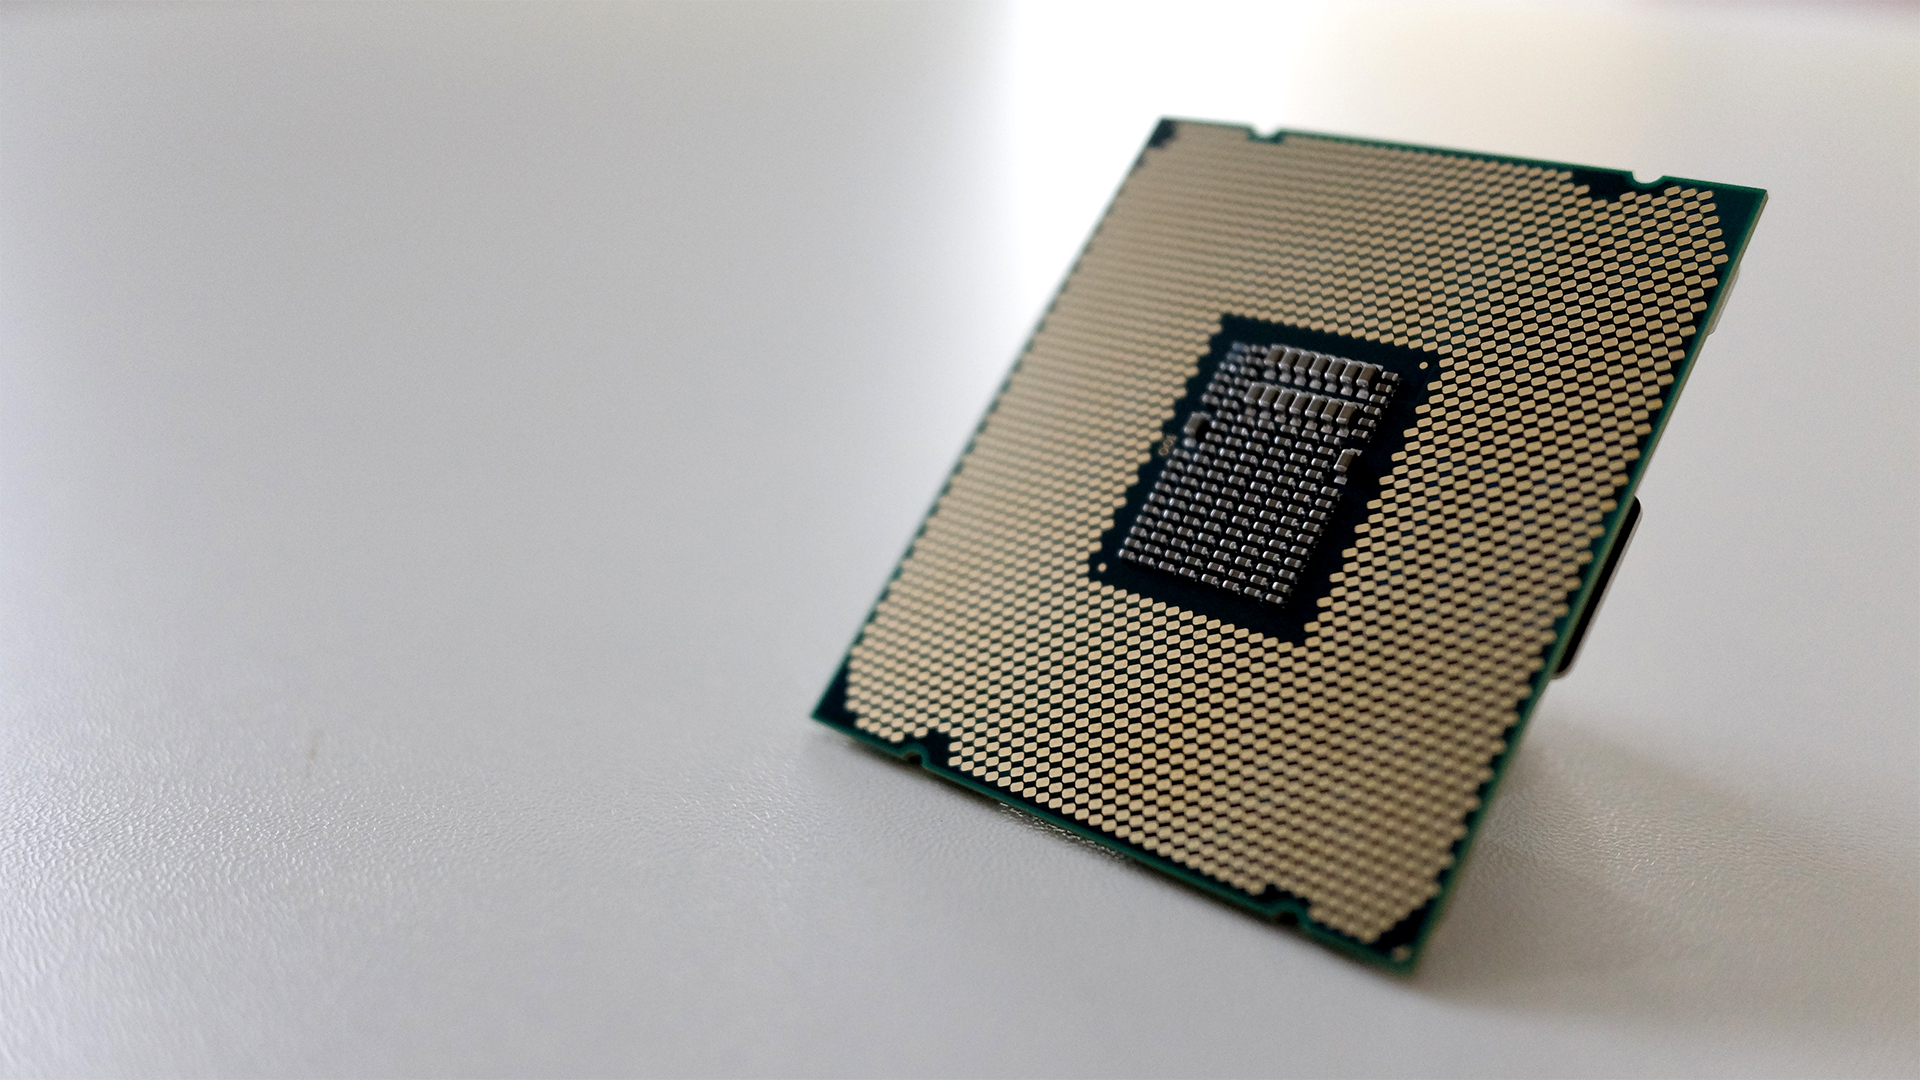 Intel's 10th-gen Comet Lake-S desktop processors could be delayed